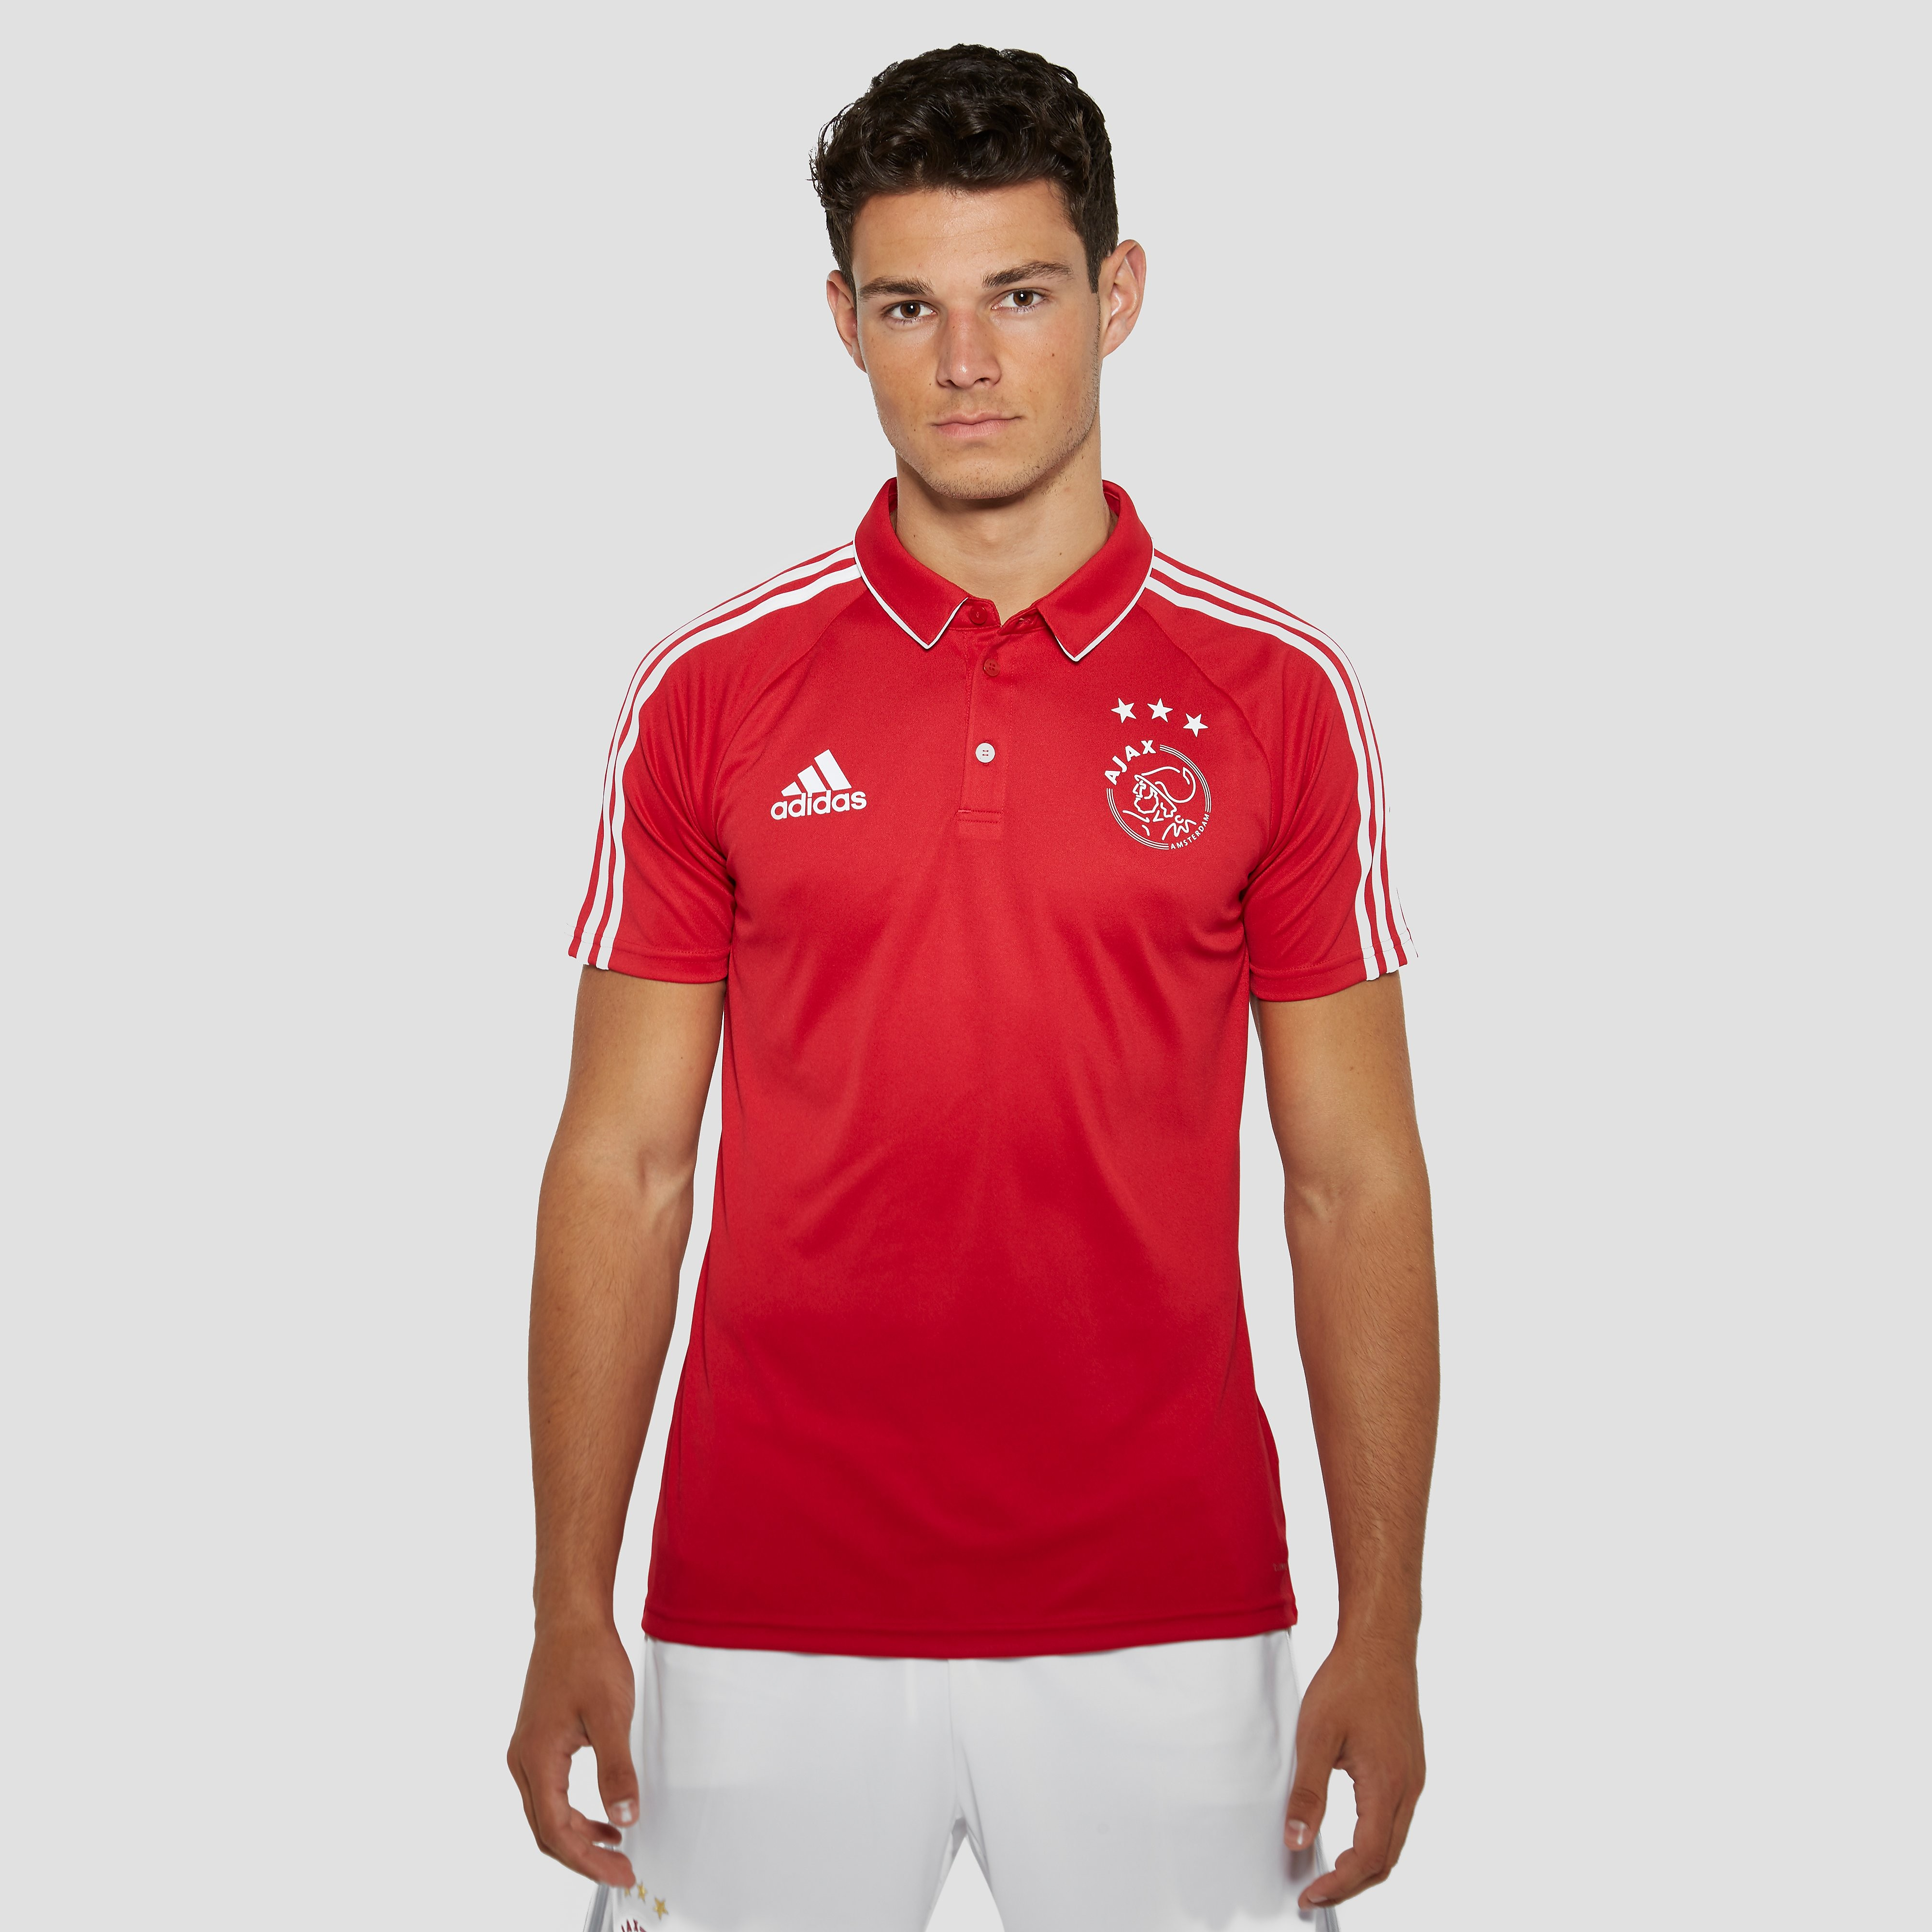 ADIDAS AJAX THUISPOLO ROOD/WIT HEREN